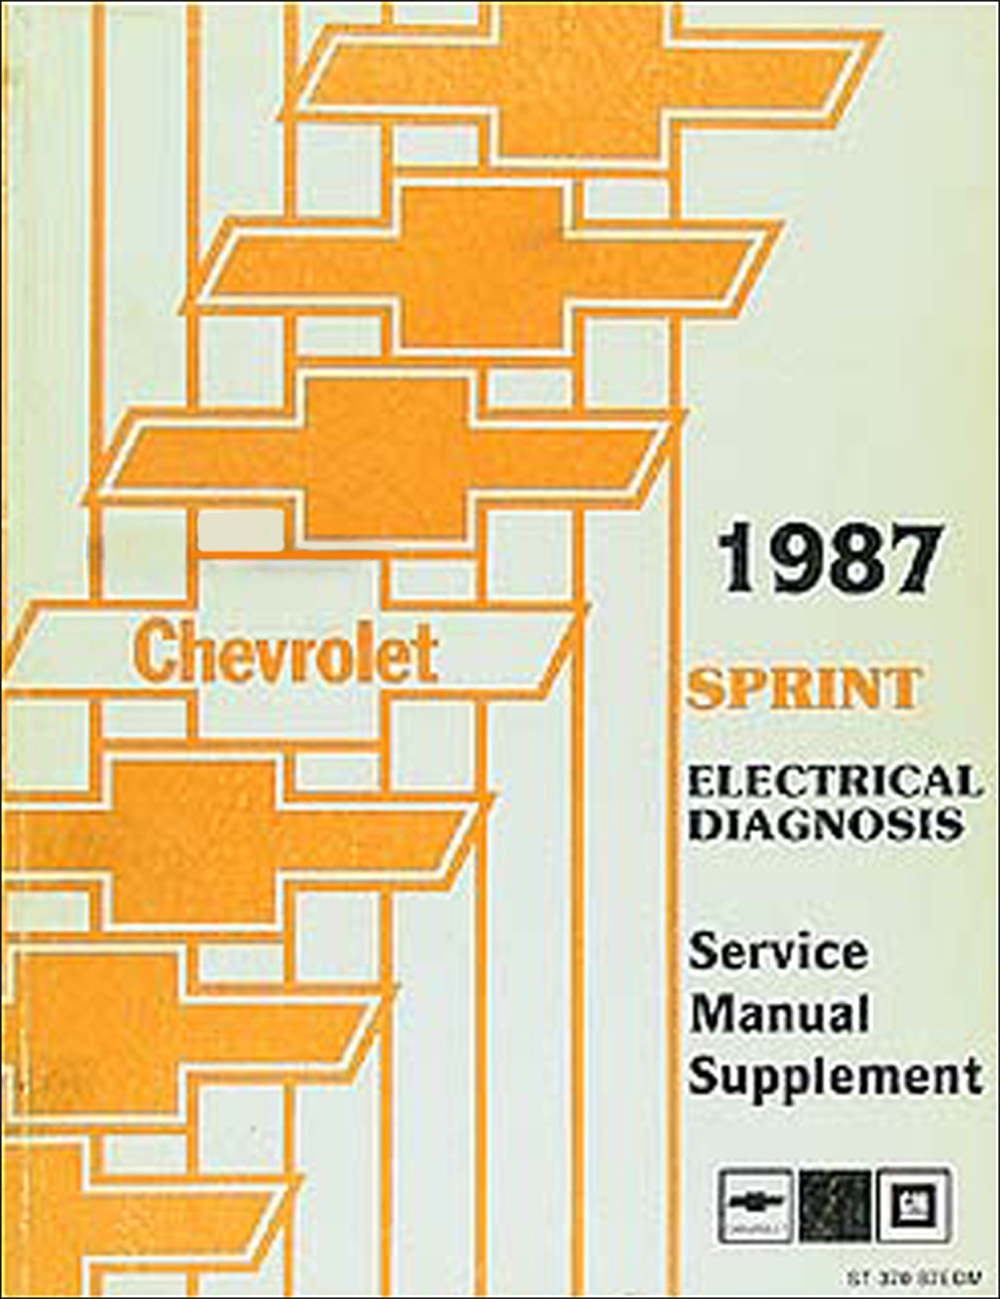 1987 Chevy Sprint Electrical Diagnosis Manual Original